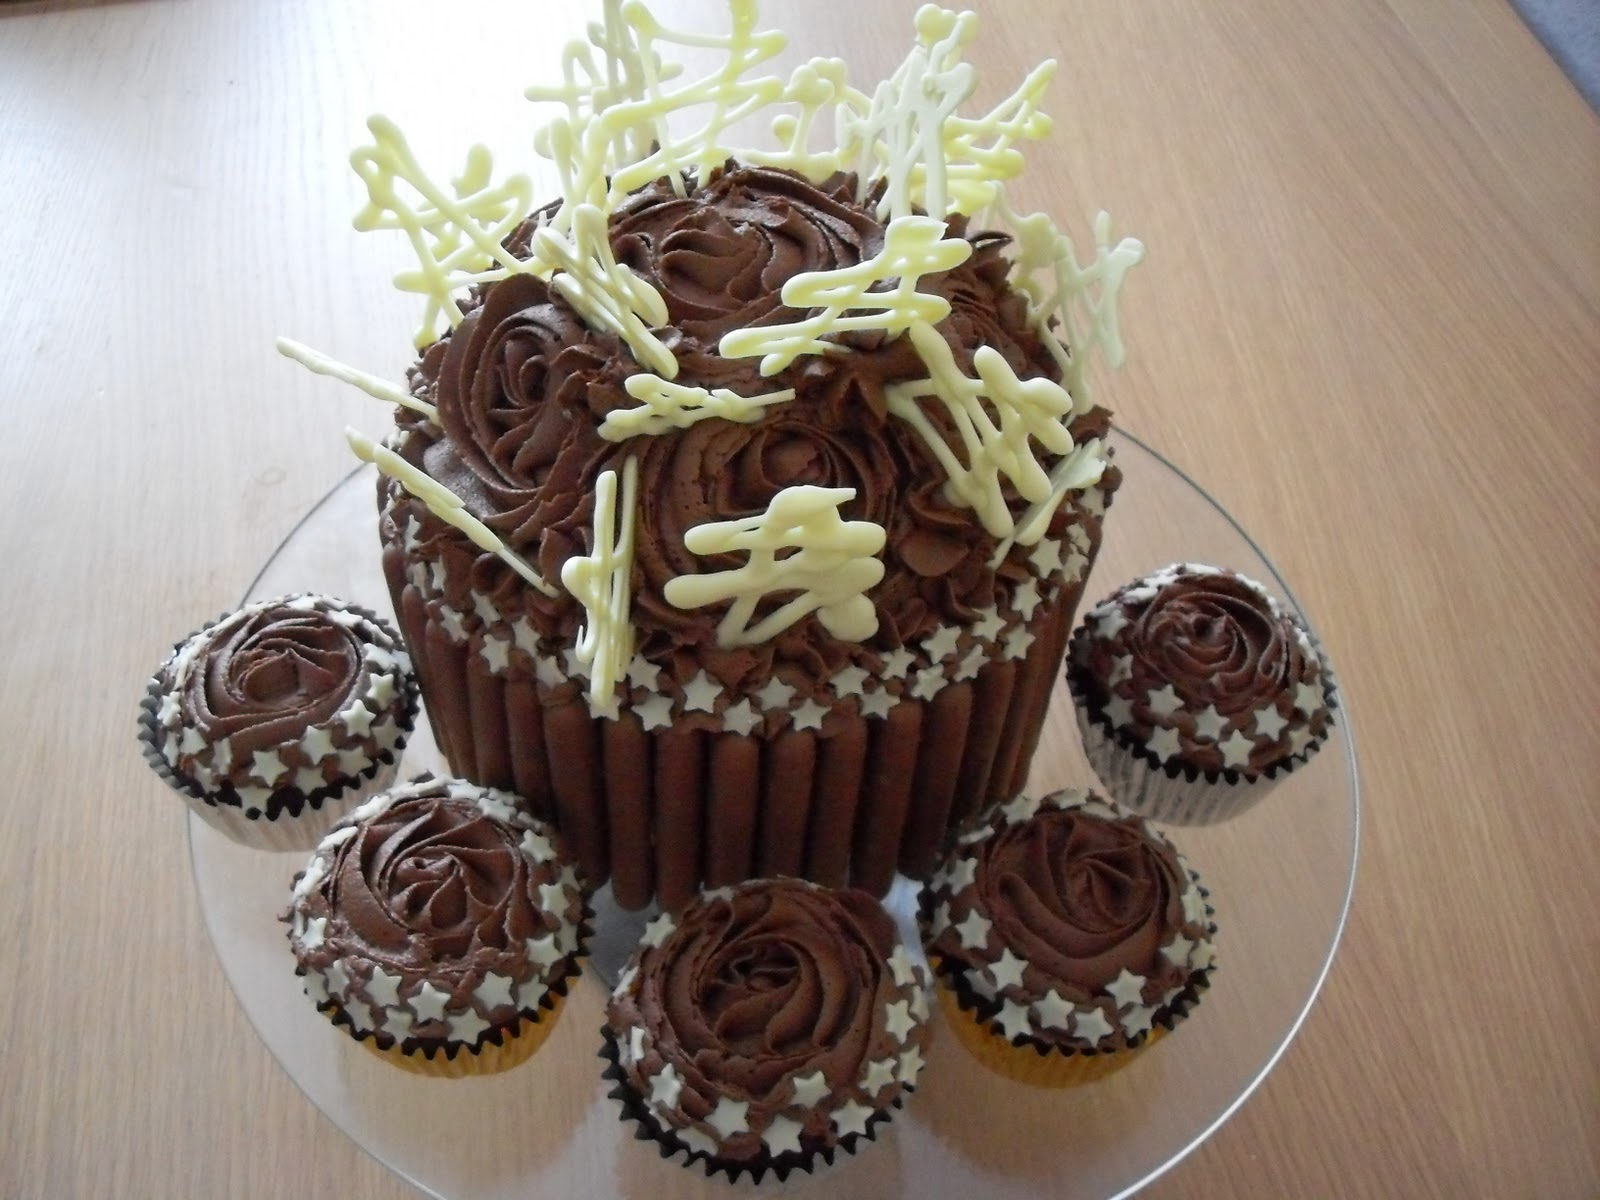 ... in Furness and the Lake District, Cumbria: Giant Chocolate Cupcake